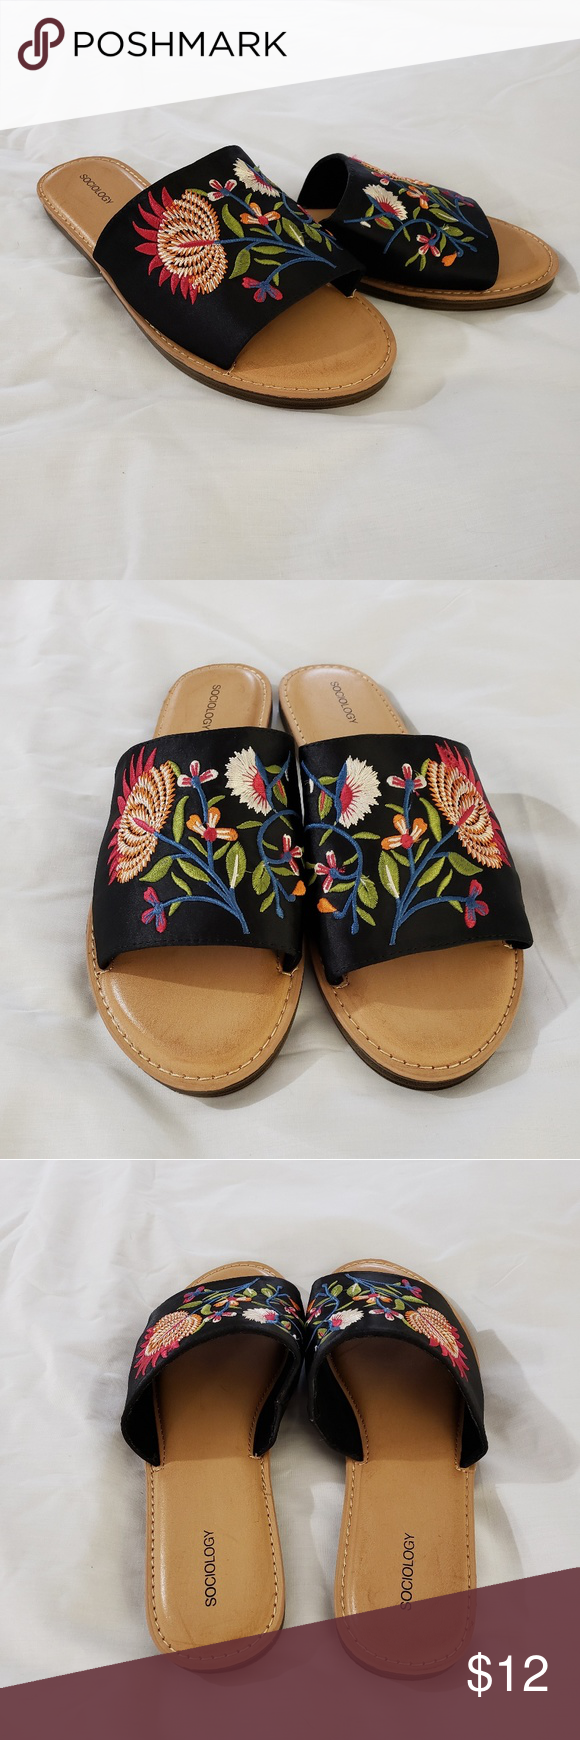 aa56db8f3483 NWOT Sociology Embroidered Flip Flops Size 10M These are a beautiful pair  of women s Sociology Embroidered